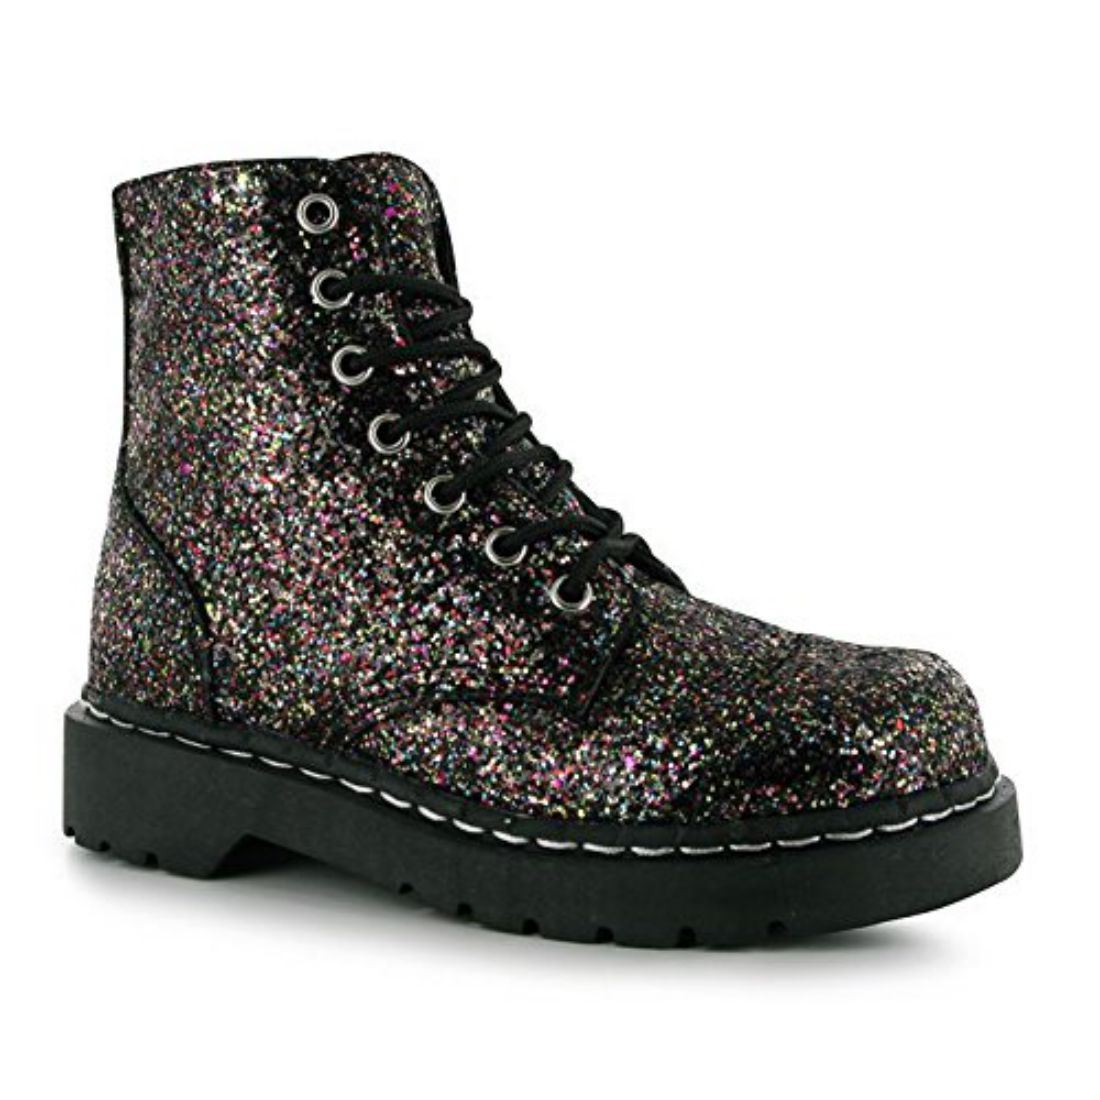 TUK Womens 7 Eye Glitter Boots Ladies Lace Up Zip Fastening Casual Shoes